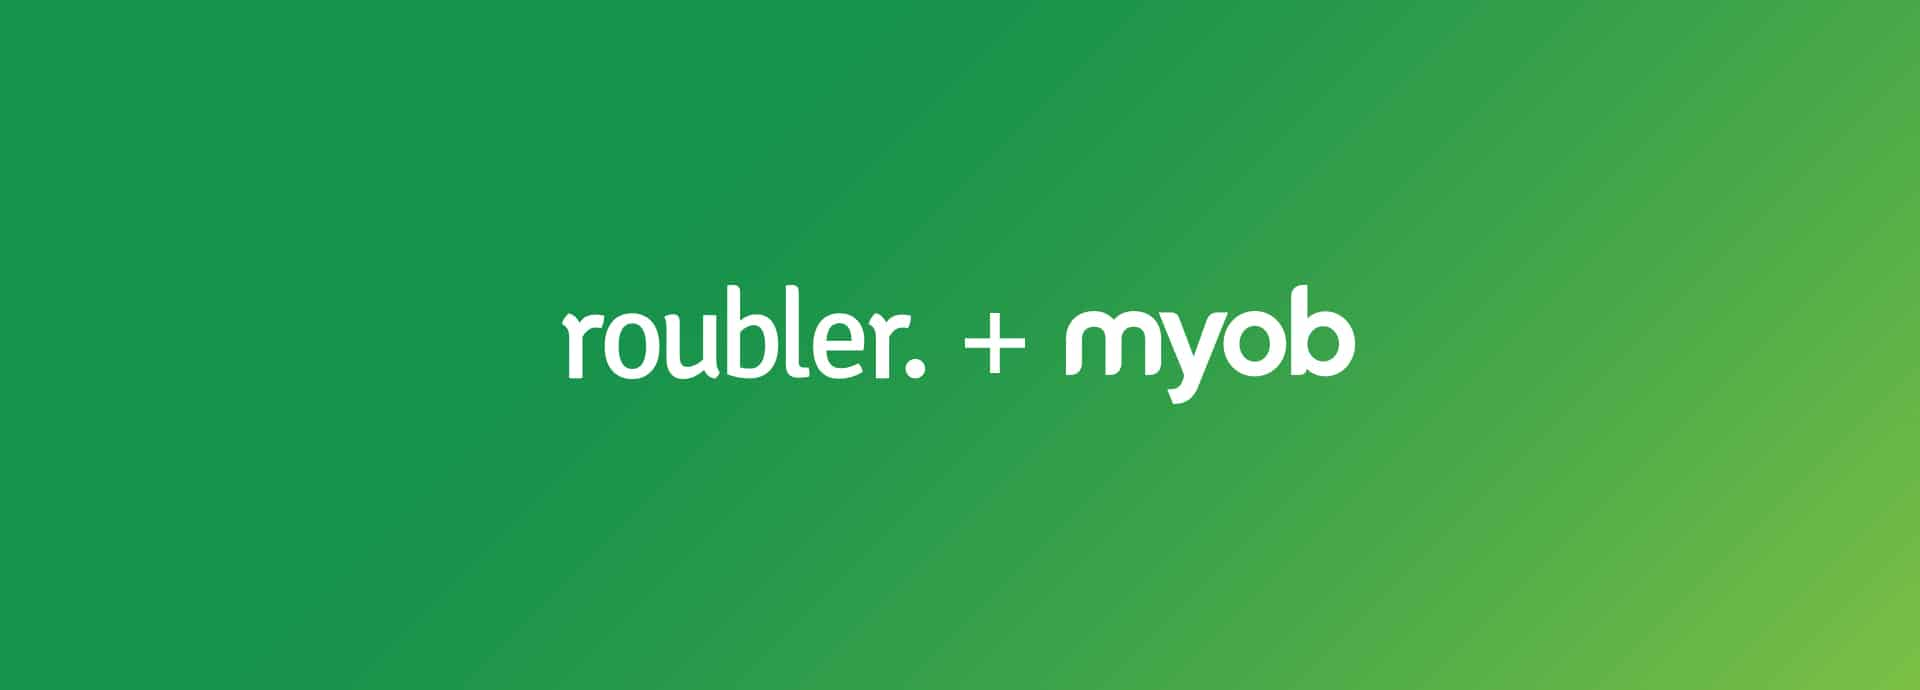 myob partnership announcement